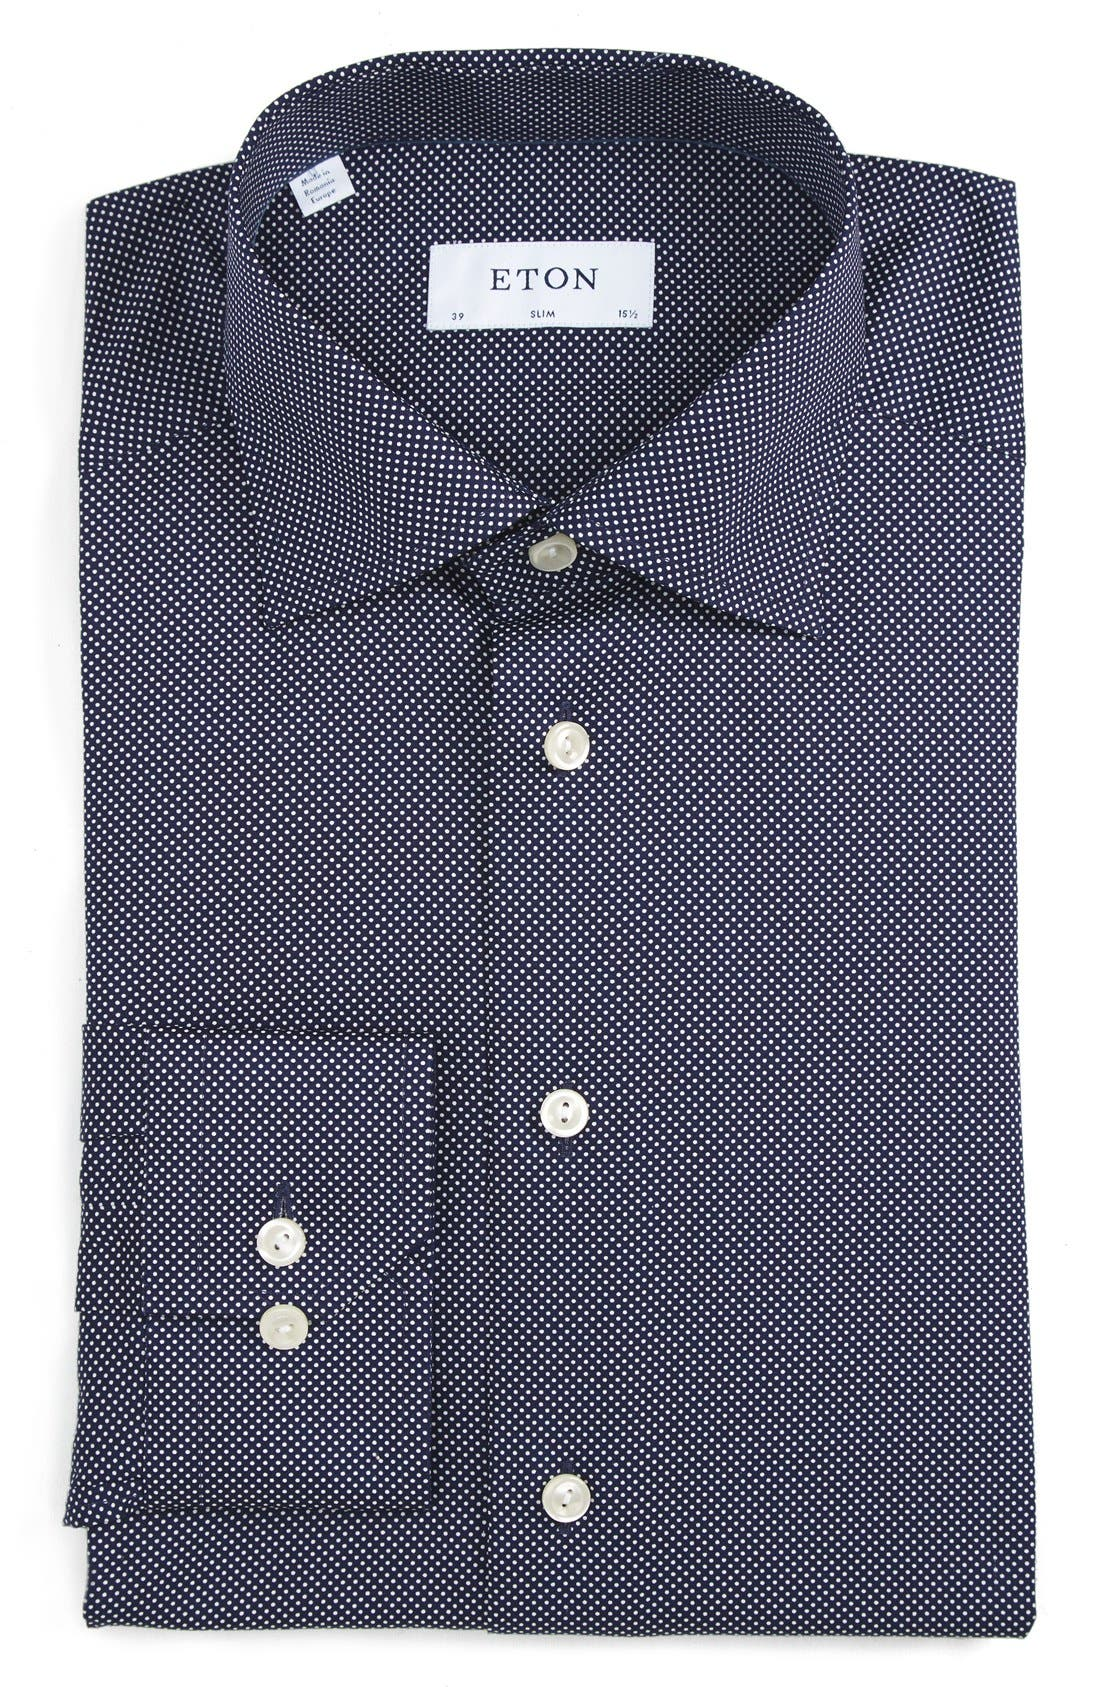 Main Image - Eton Slim Fit Dot Dress Shirt